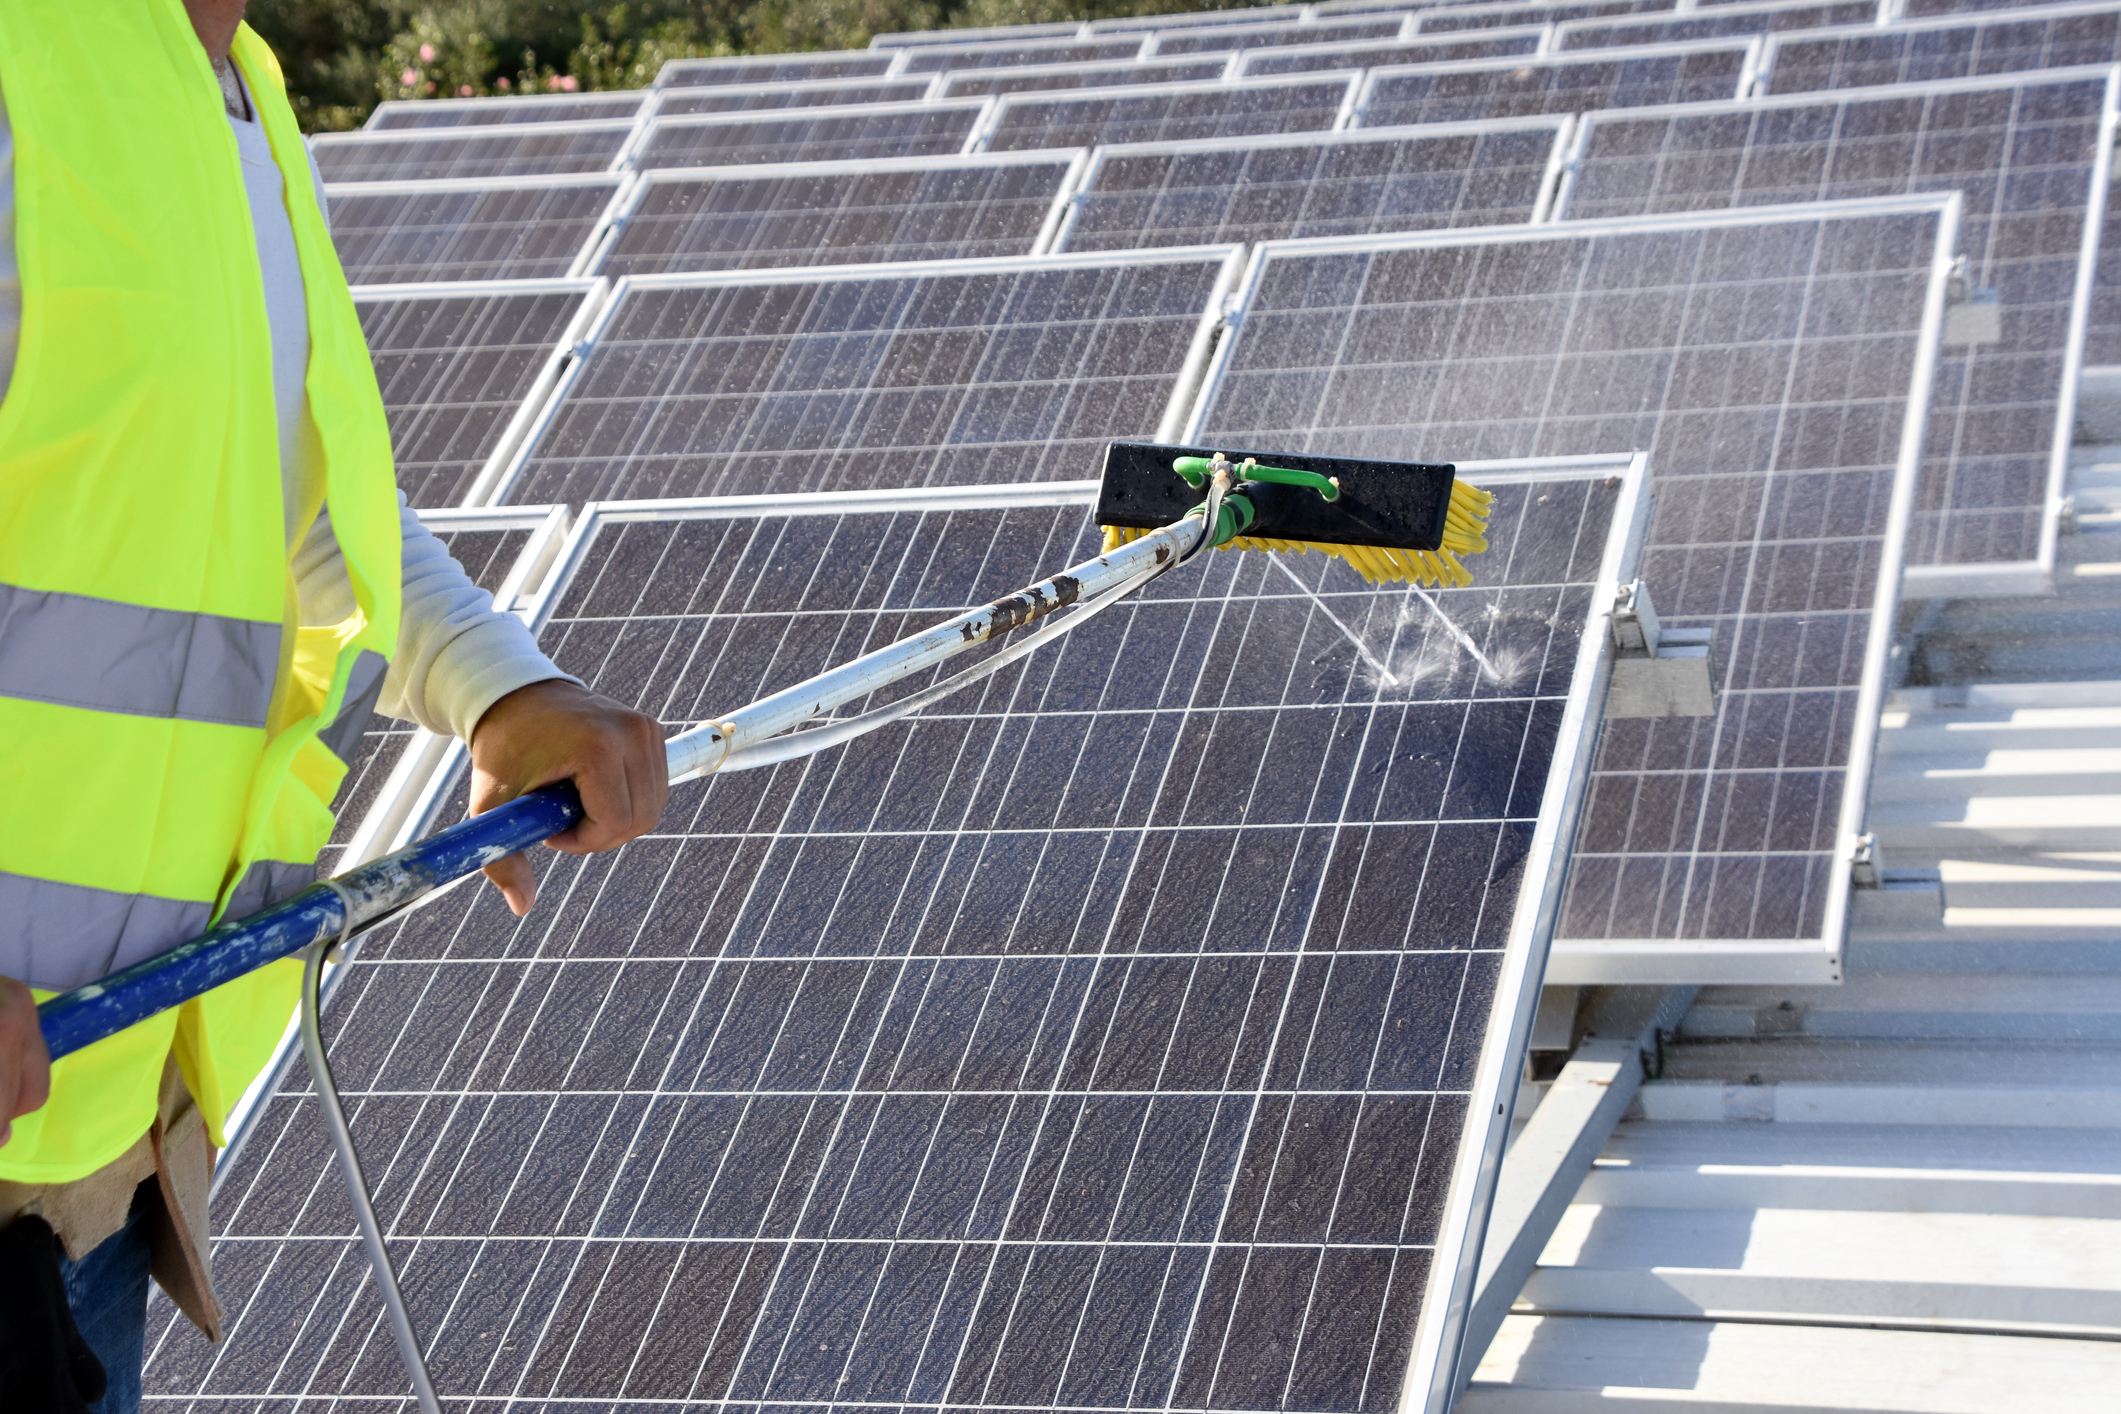 SOLAR - Solar panels are outside in the wind and sun all day. They see dust, bird droppings, leaves and who knows what else. Cleaning your panels on a regular basis will help you see consistent performance.